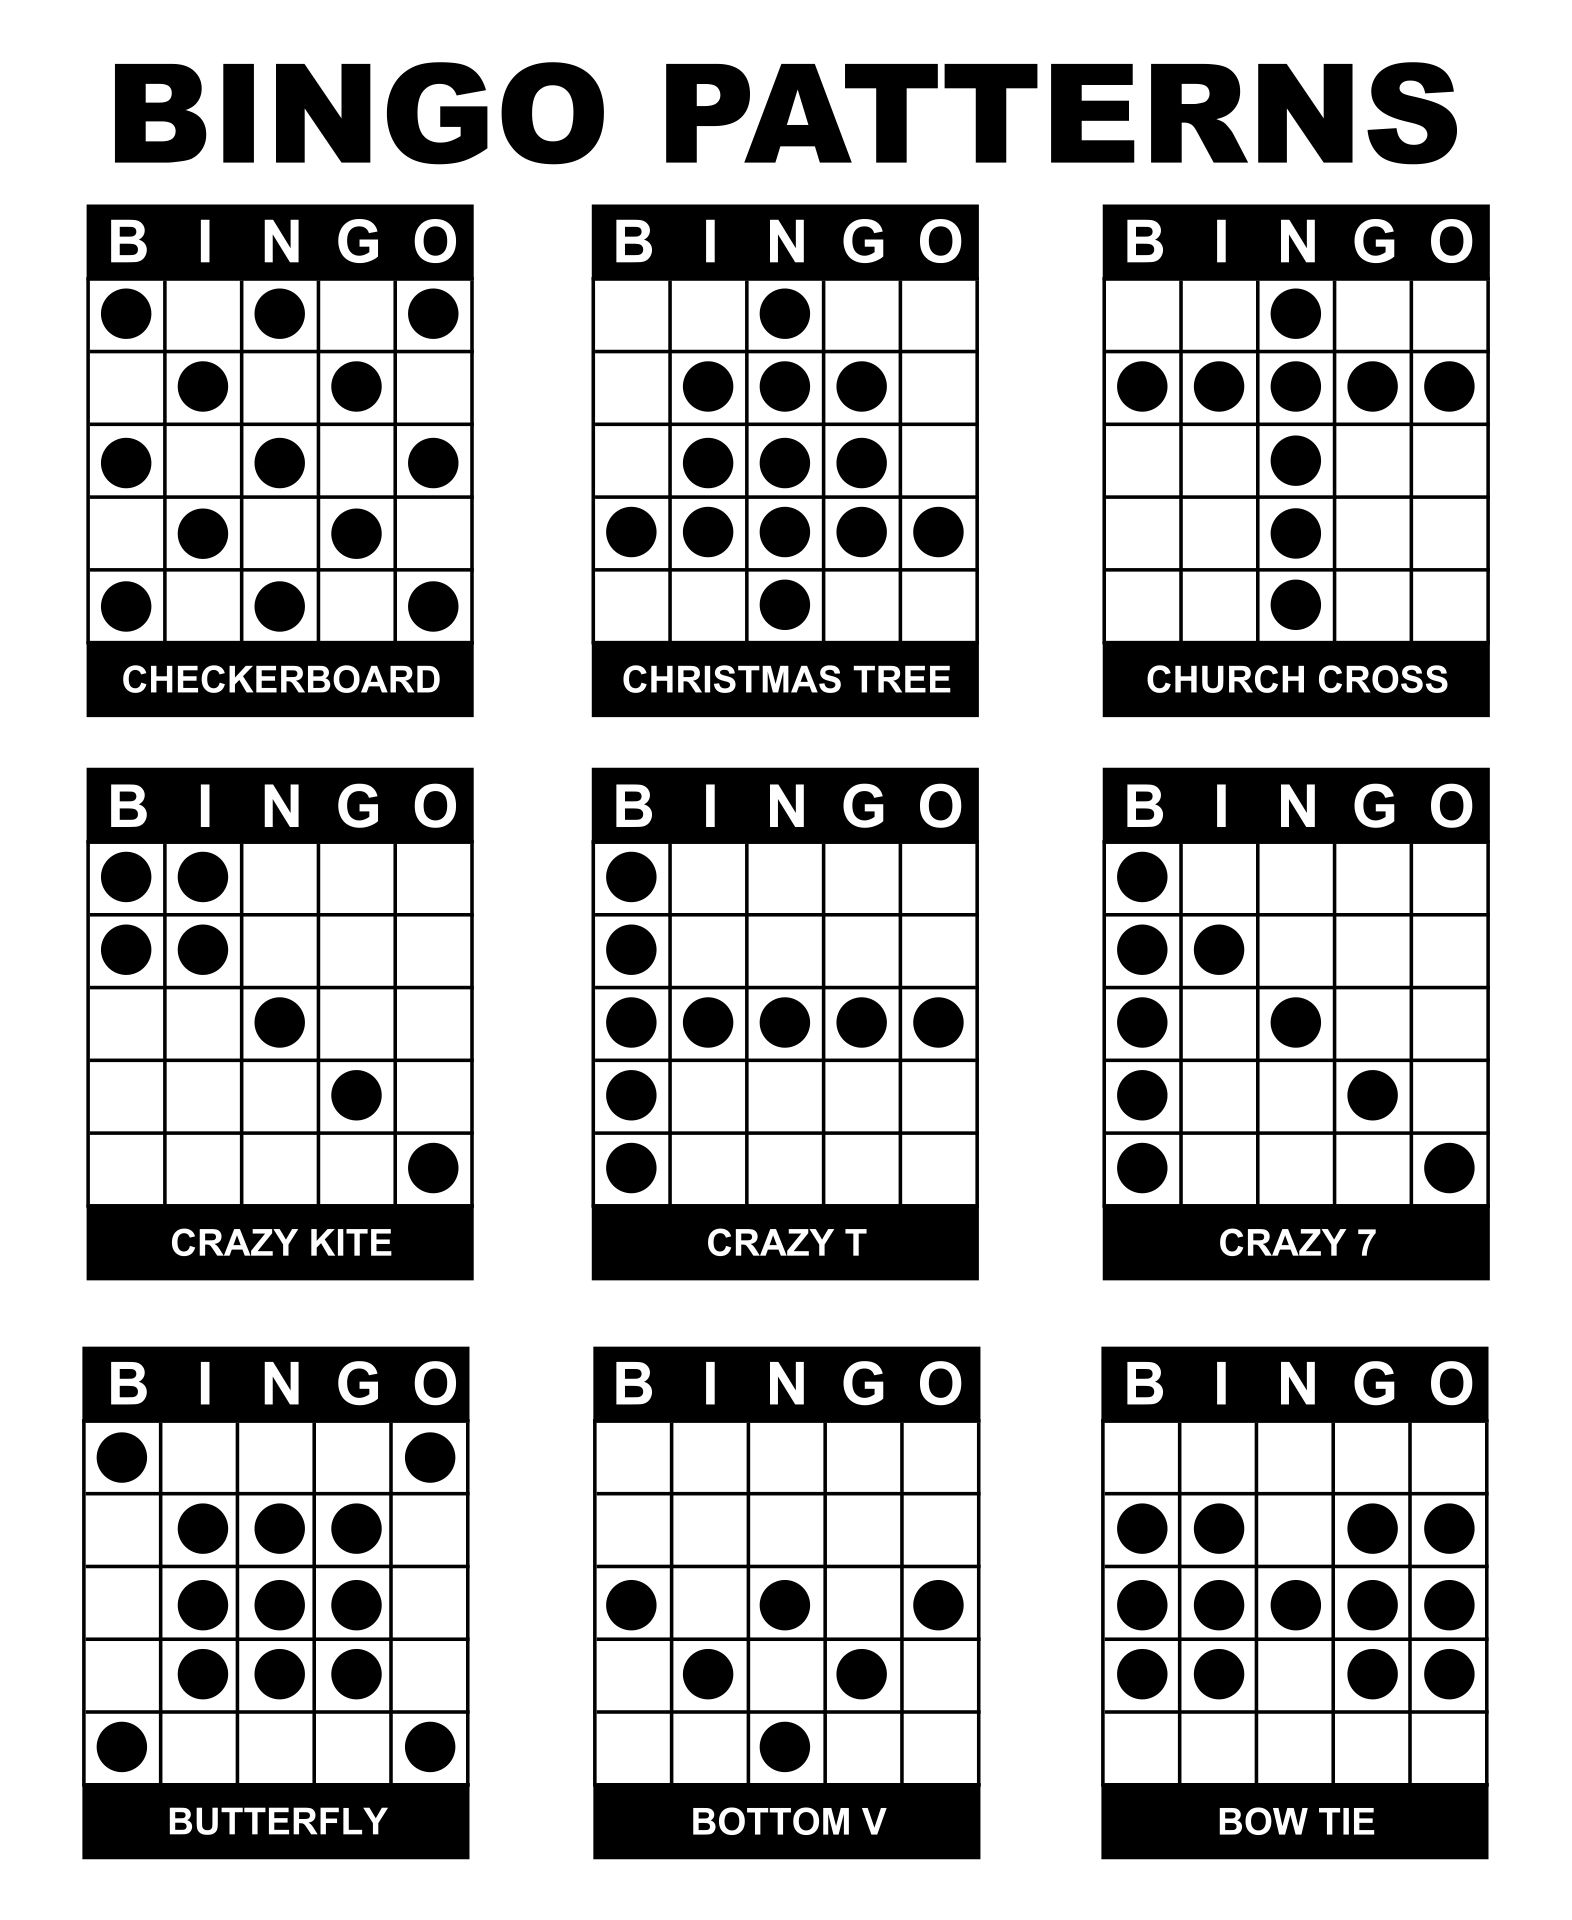 6 Images of Printable Bingo Game Patterns